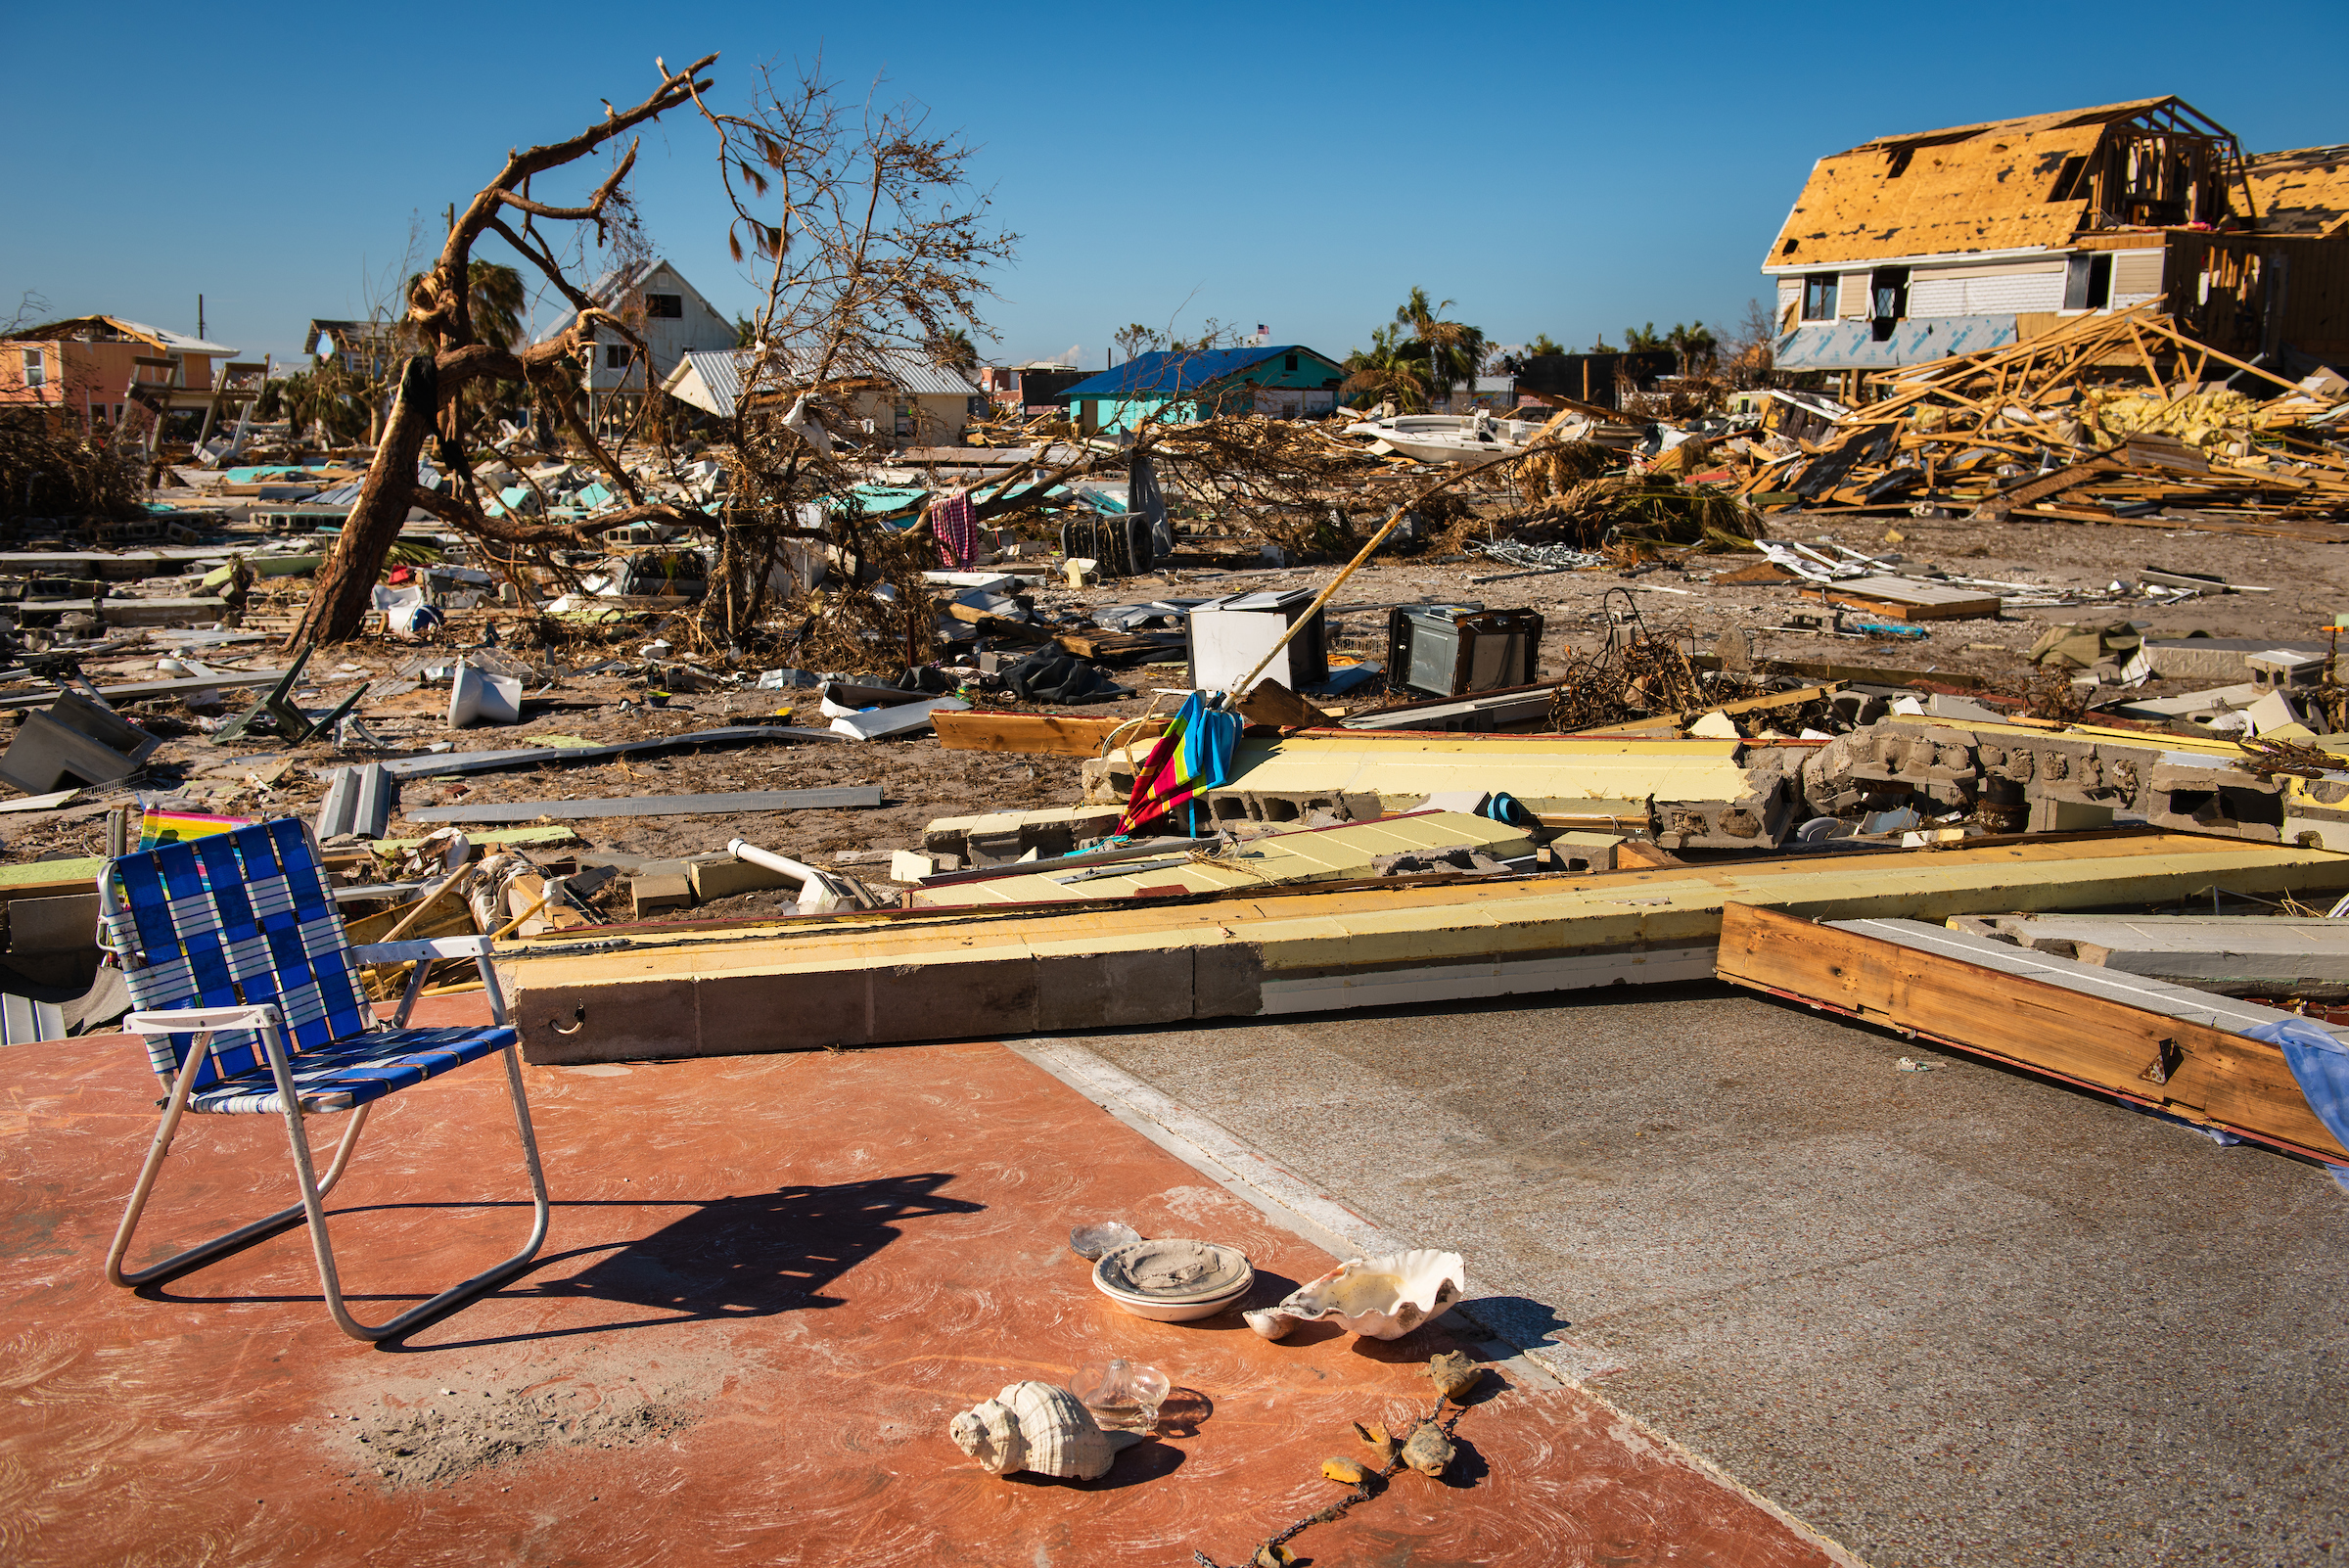 A lawn chair on a foundation where a home once stood on Tuesday, Oct. 16, 2018, in Mexico Beach, Fla. Hurricane Michael devastated the area the previous week. LCMS Communications/Erik M. Lunsford